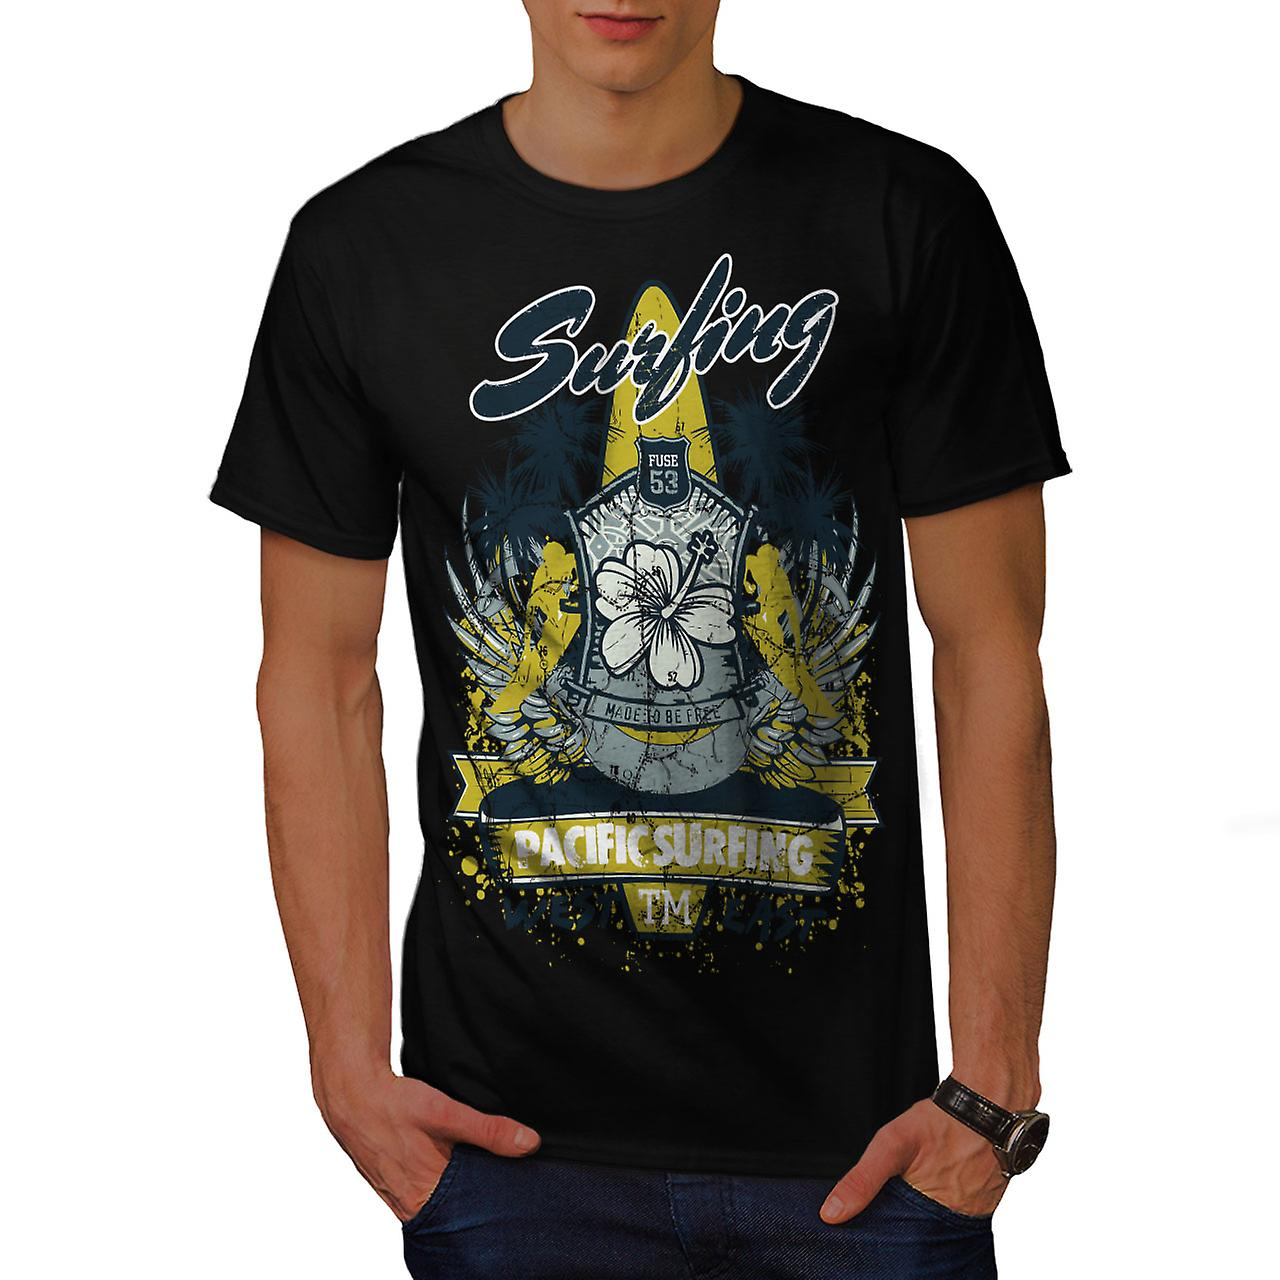 Pacific Surfing Holiday Men Black T-shirt | Wellcoda